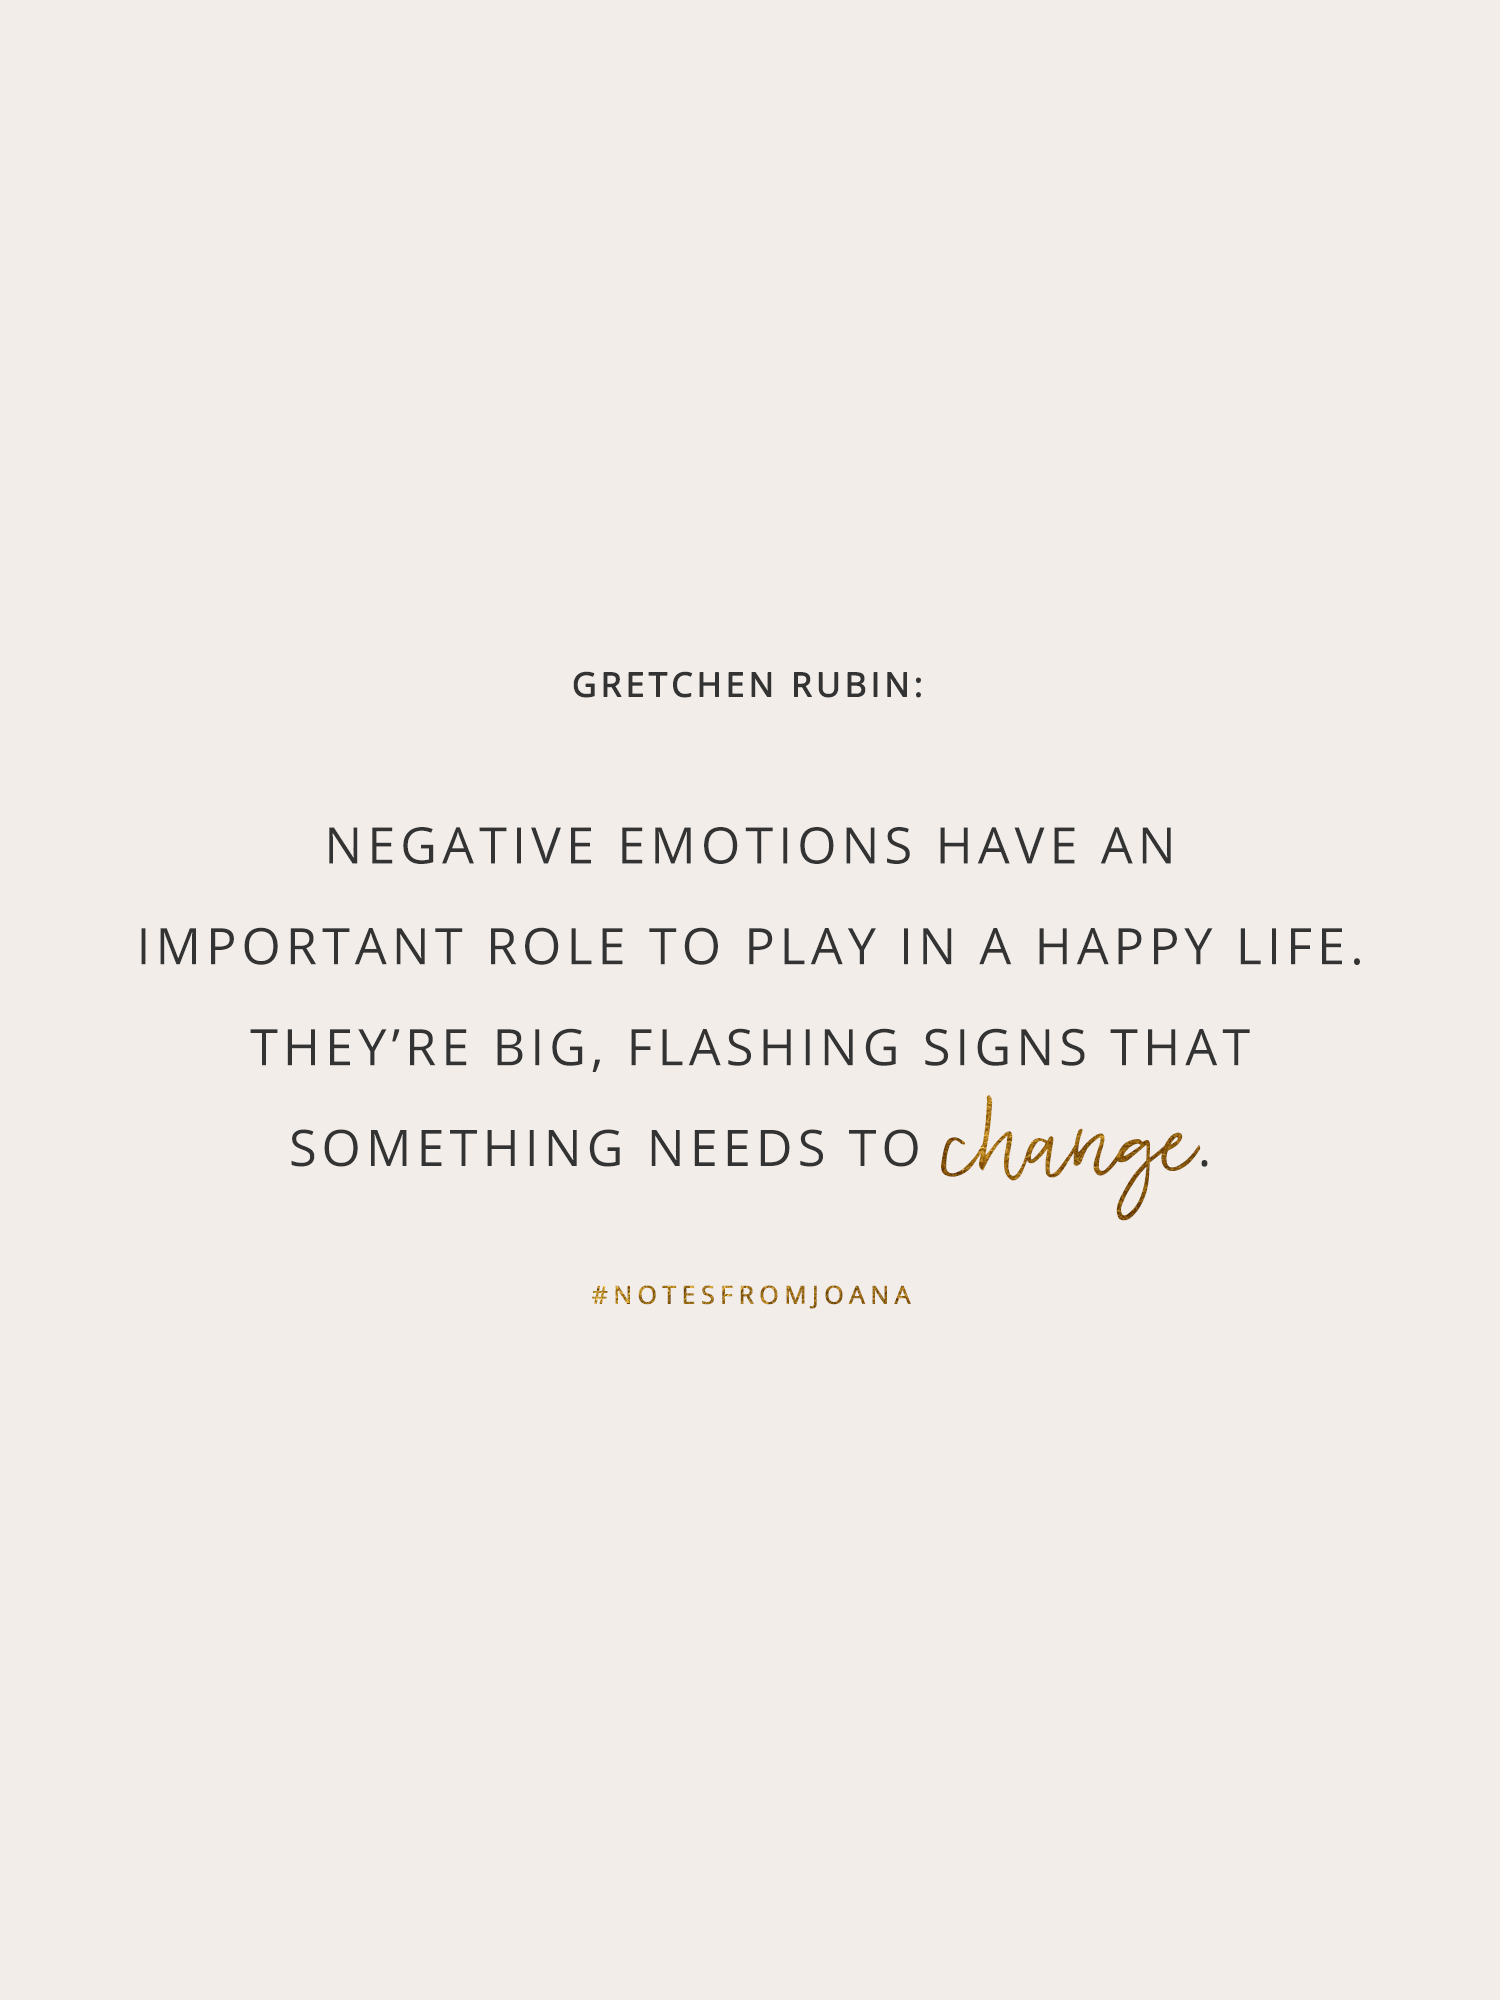 20 Inspirational Quotes To Help You Become Your Best Self. Negative emotions have an important role to play in a happy life. They're big, flashing signs that something needs to change. GRETCHEN RUBIN // Notes from Joana